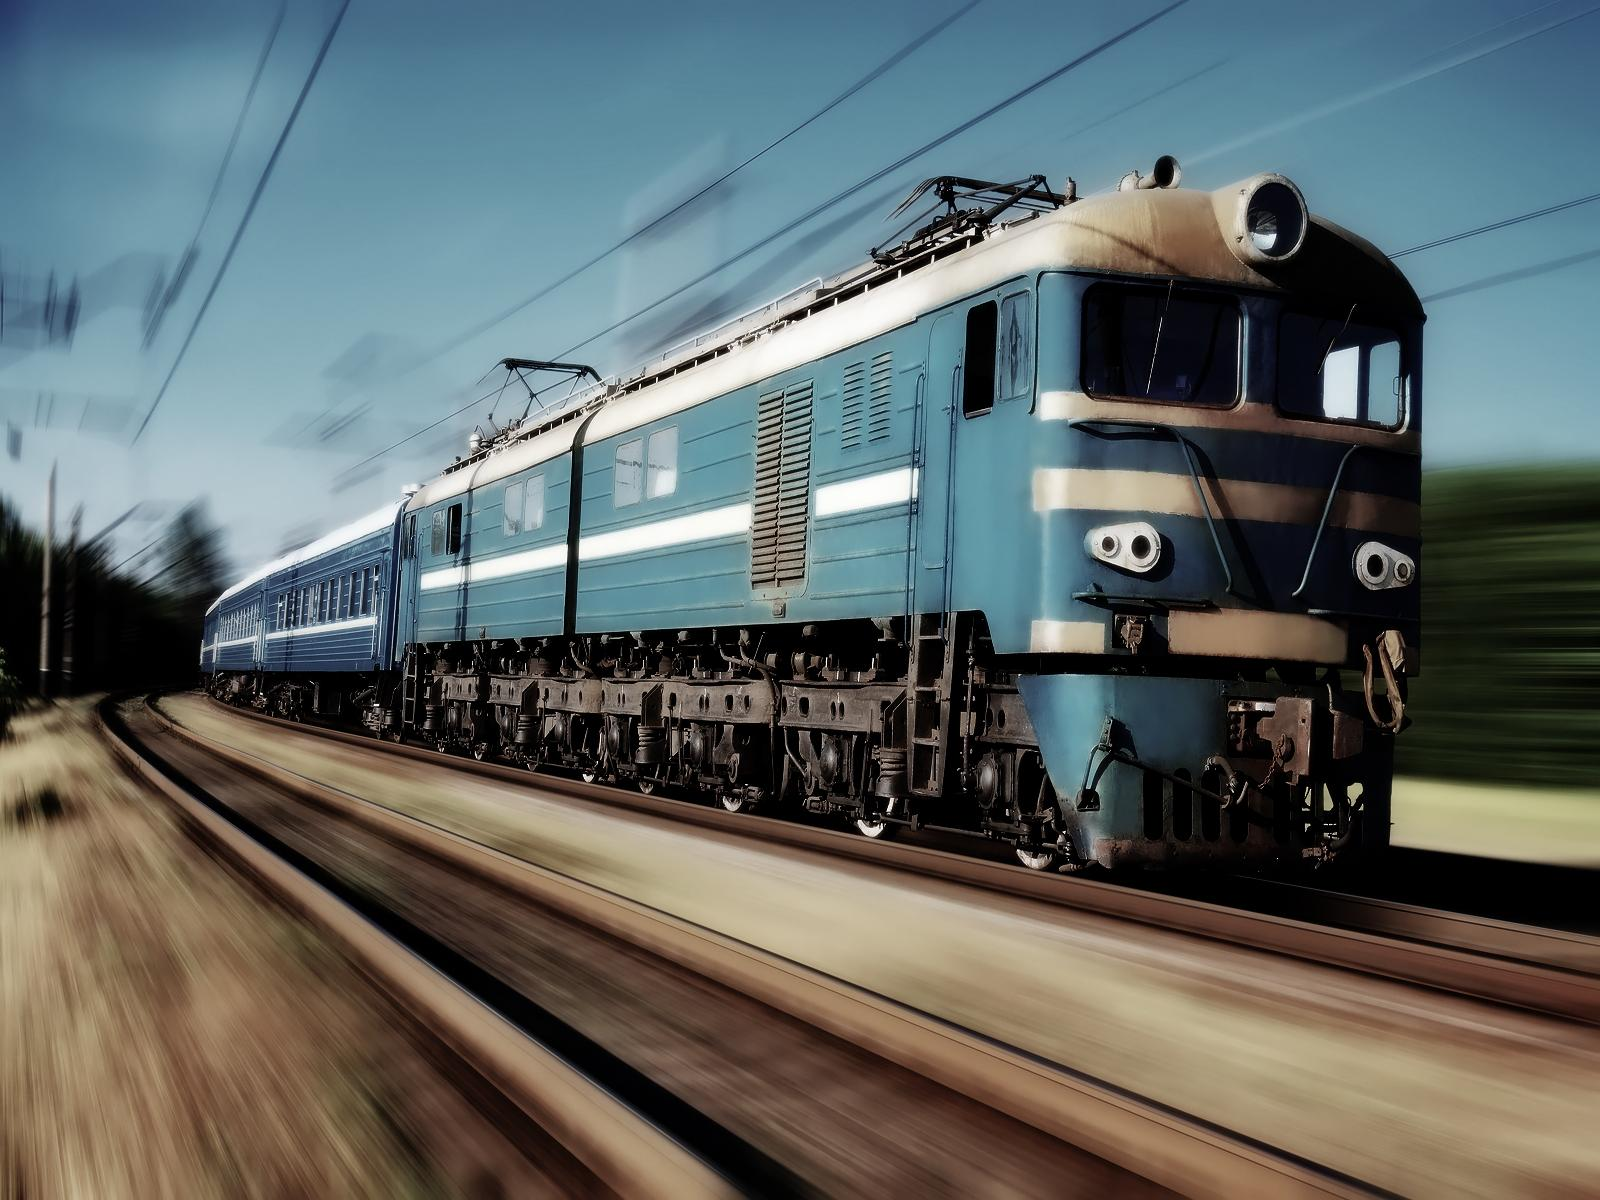 Top  Most Beautiful And Fabulous Train Wallpapers In HD 1600x1200